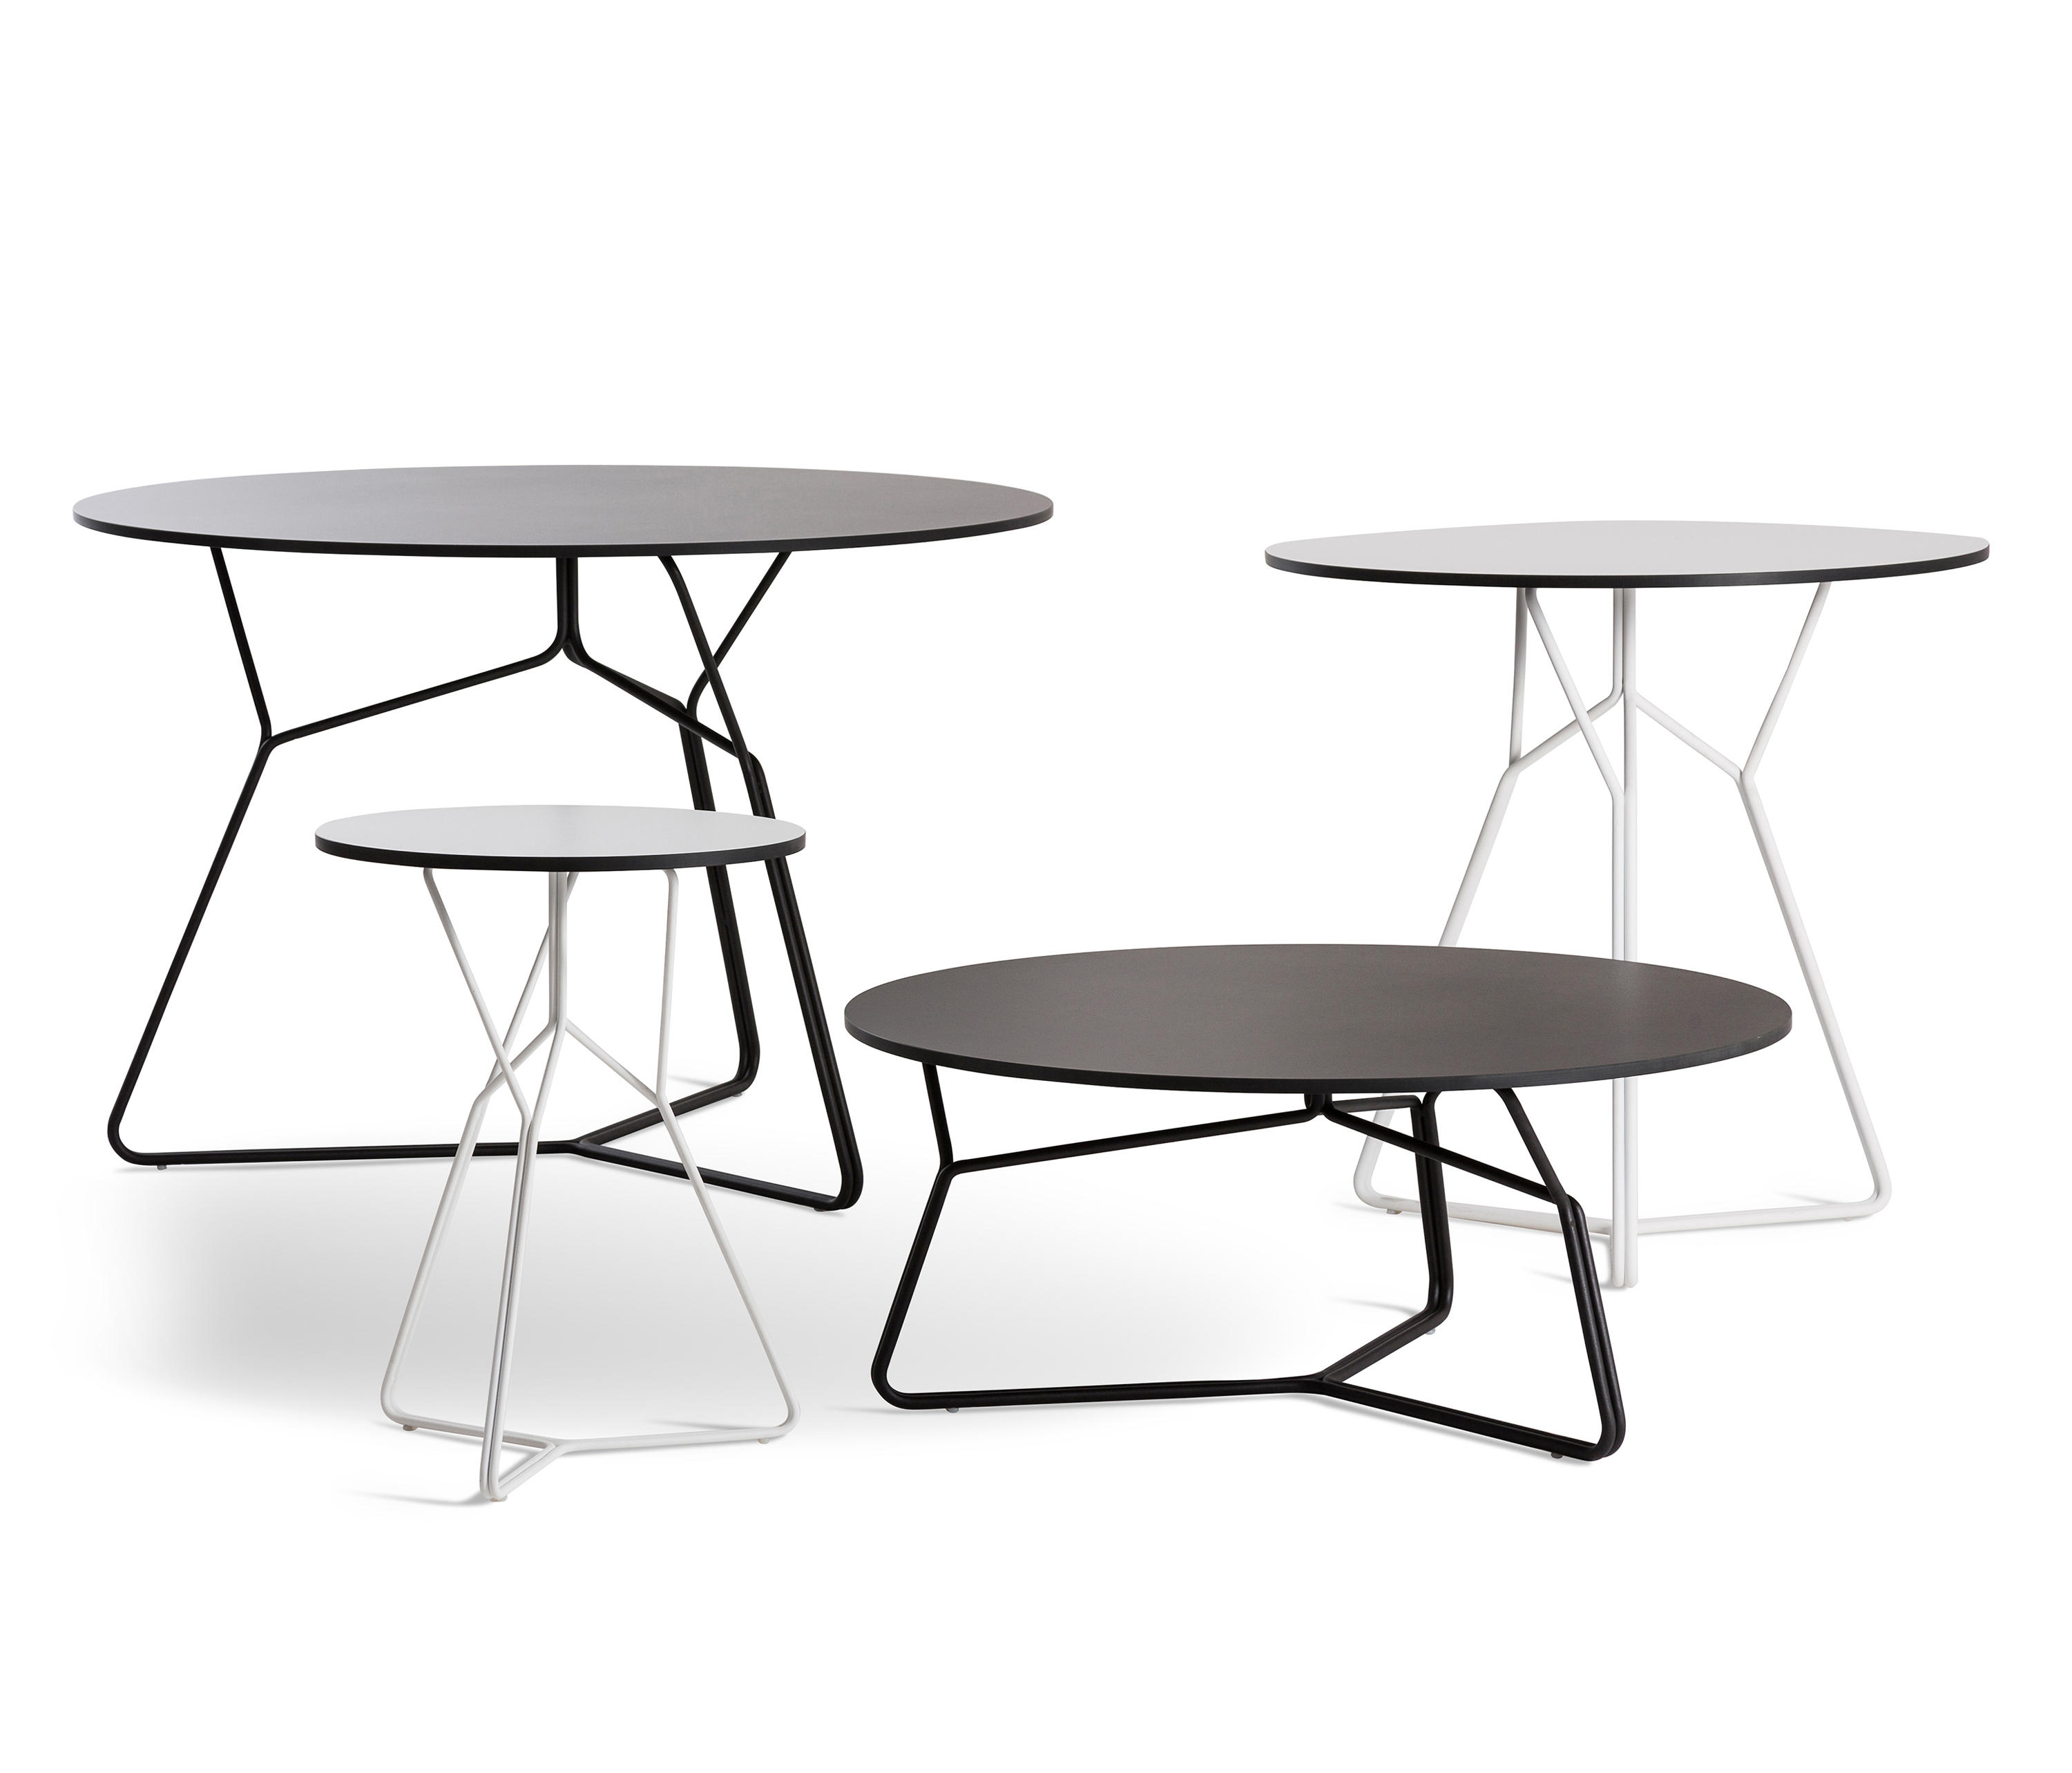 serac dining table ceramic bistro tables from oasiq architonic. Black Bedroom Furniture Sets. Home Design Ideas